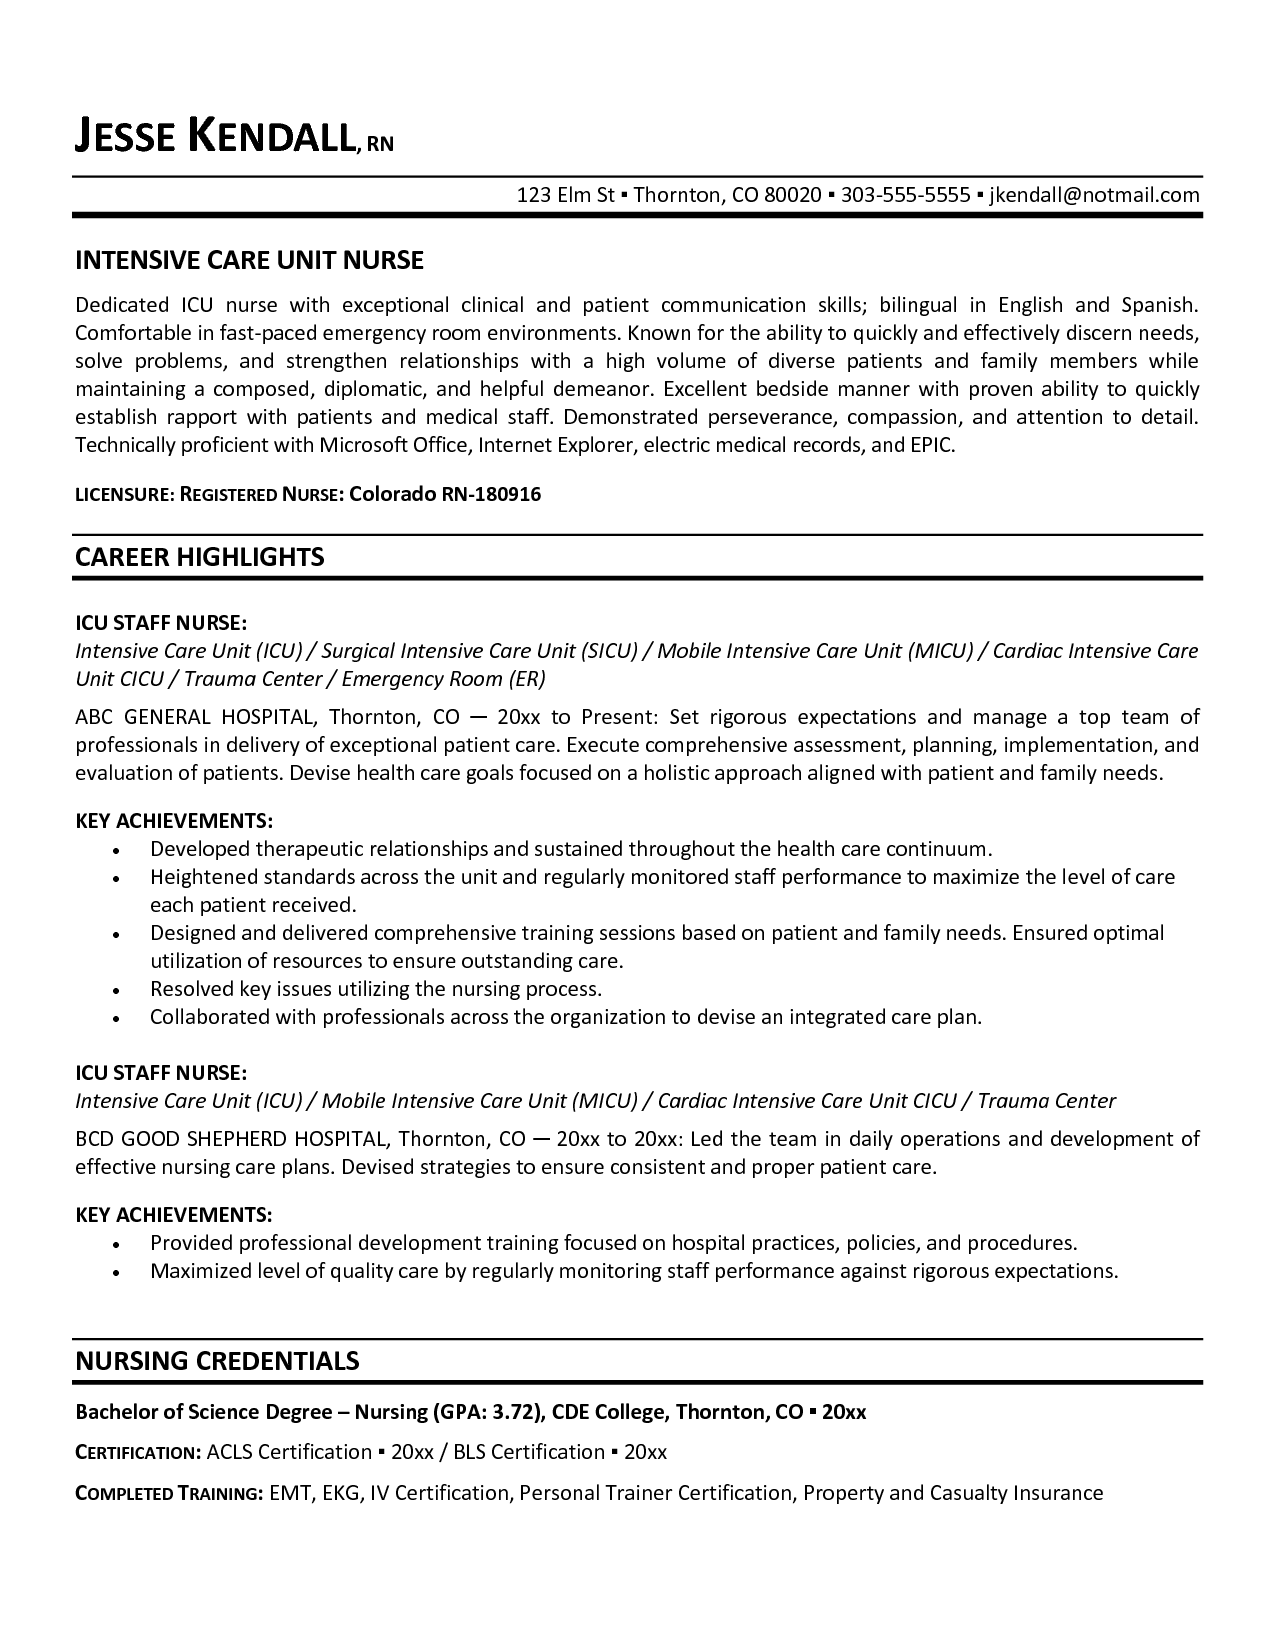 Resume After College Thesis Statement For Marketing Plansample Statement Of Purpose